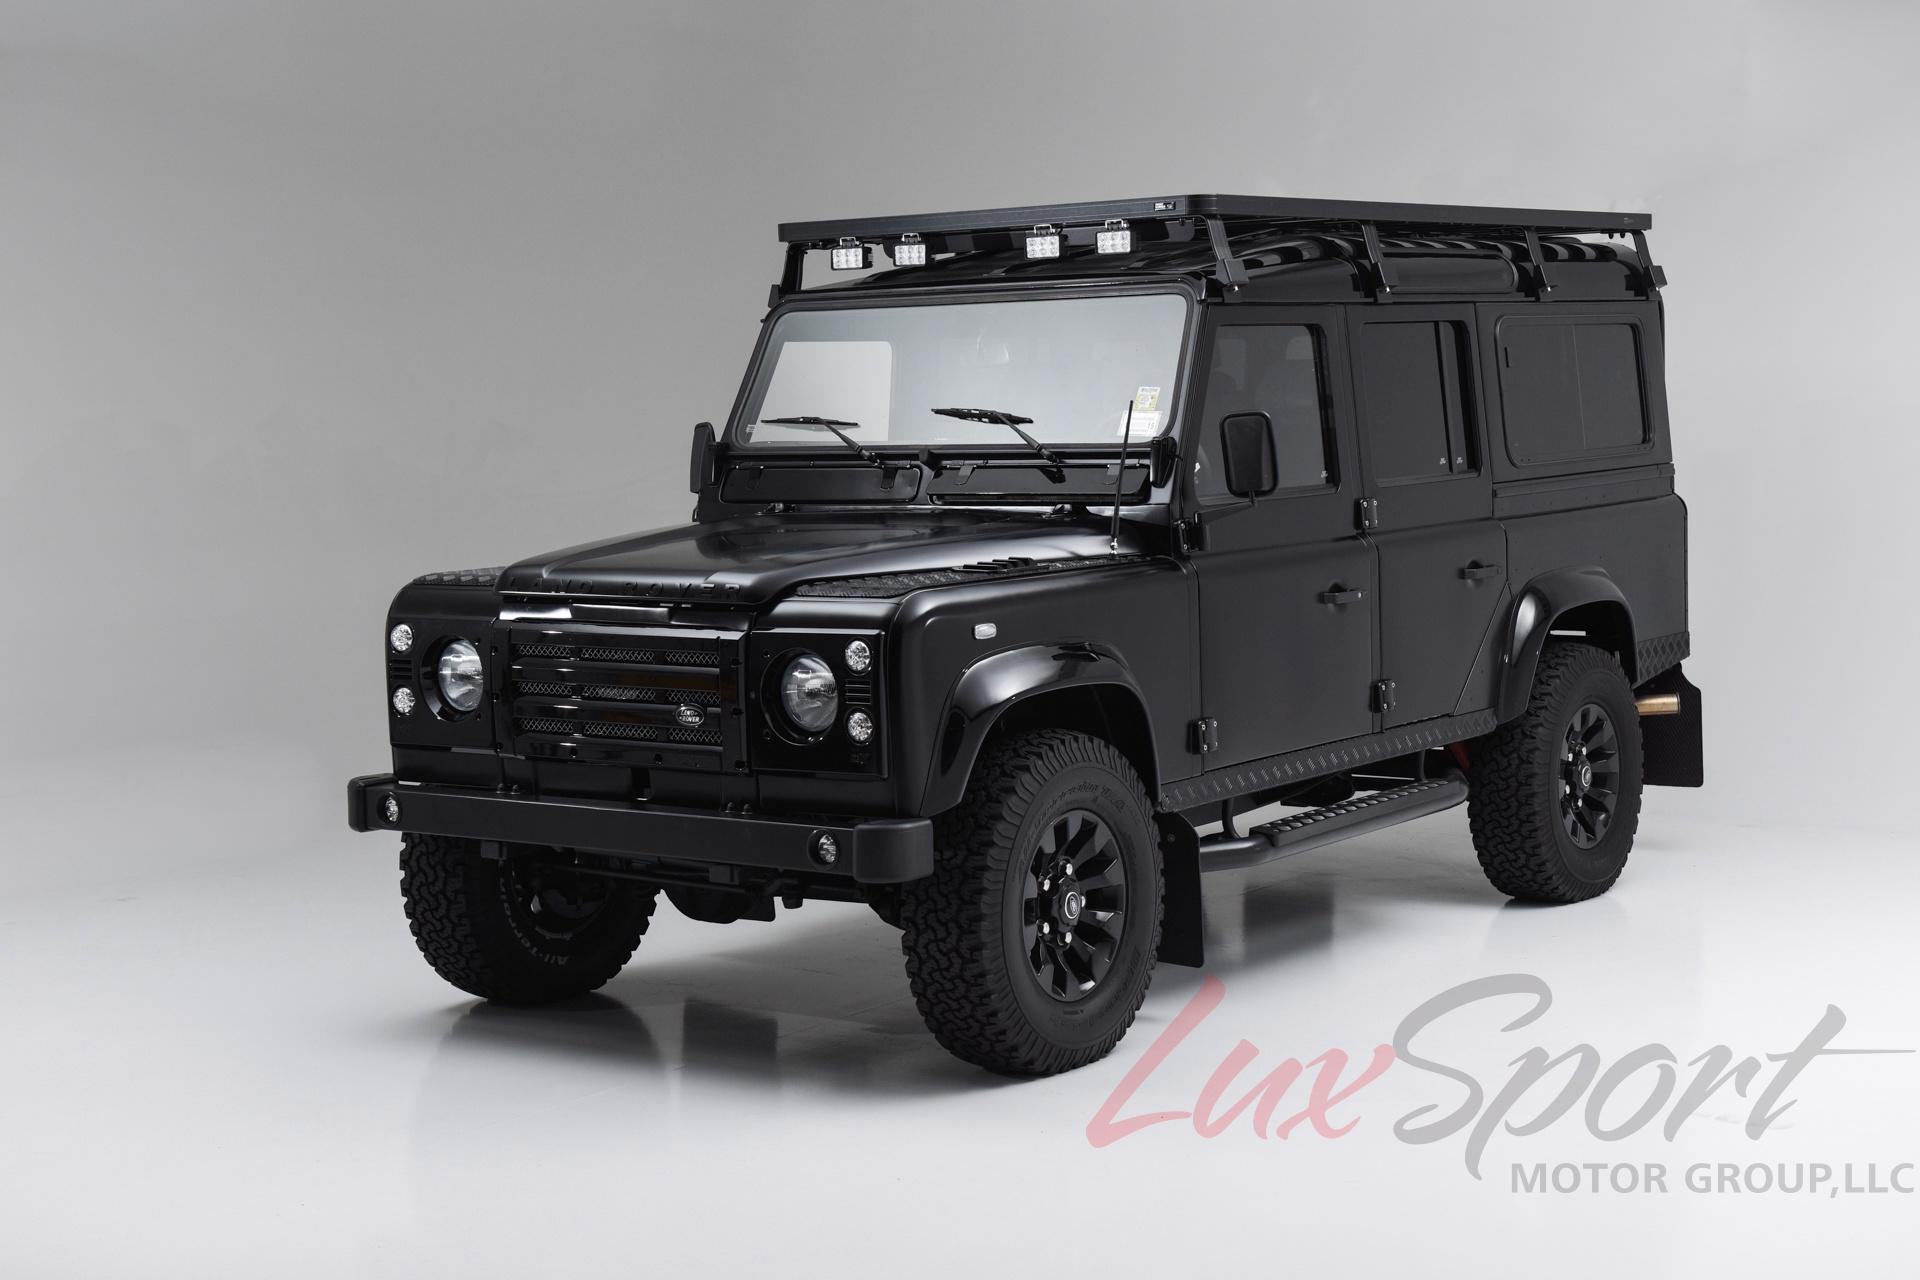 1988 Land Rover Defender 110 Stock for sale near New